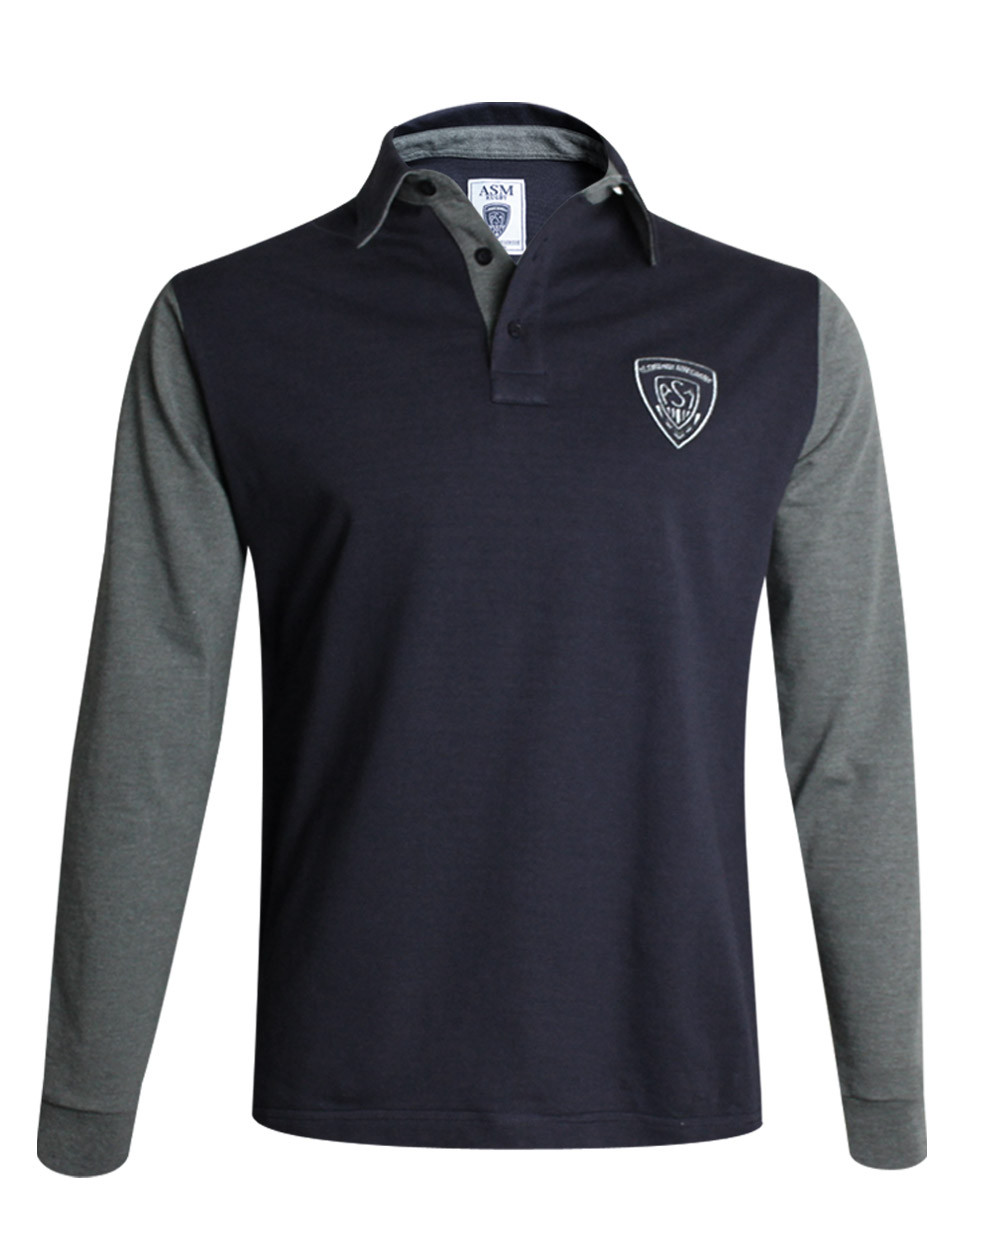 Polo BRYAN ASM marine manches longues grises homme